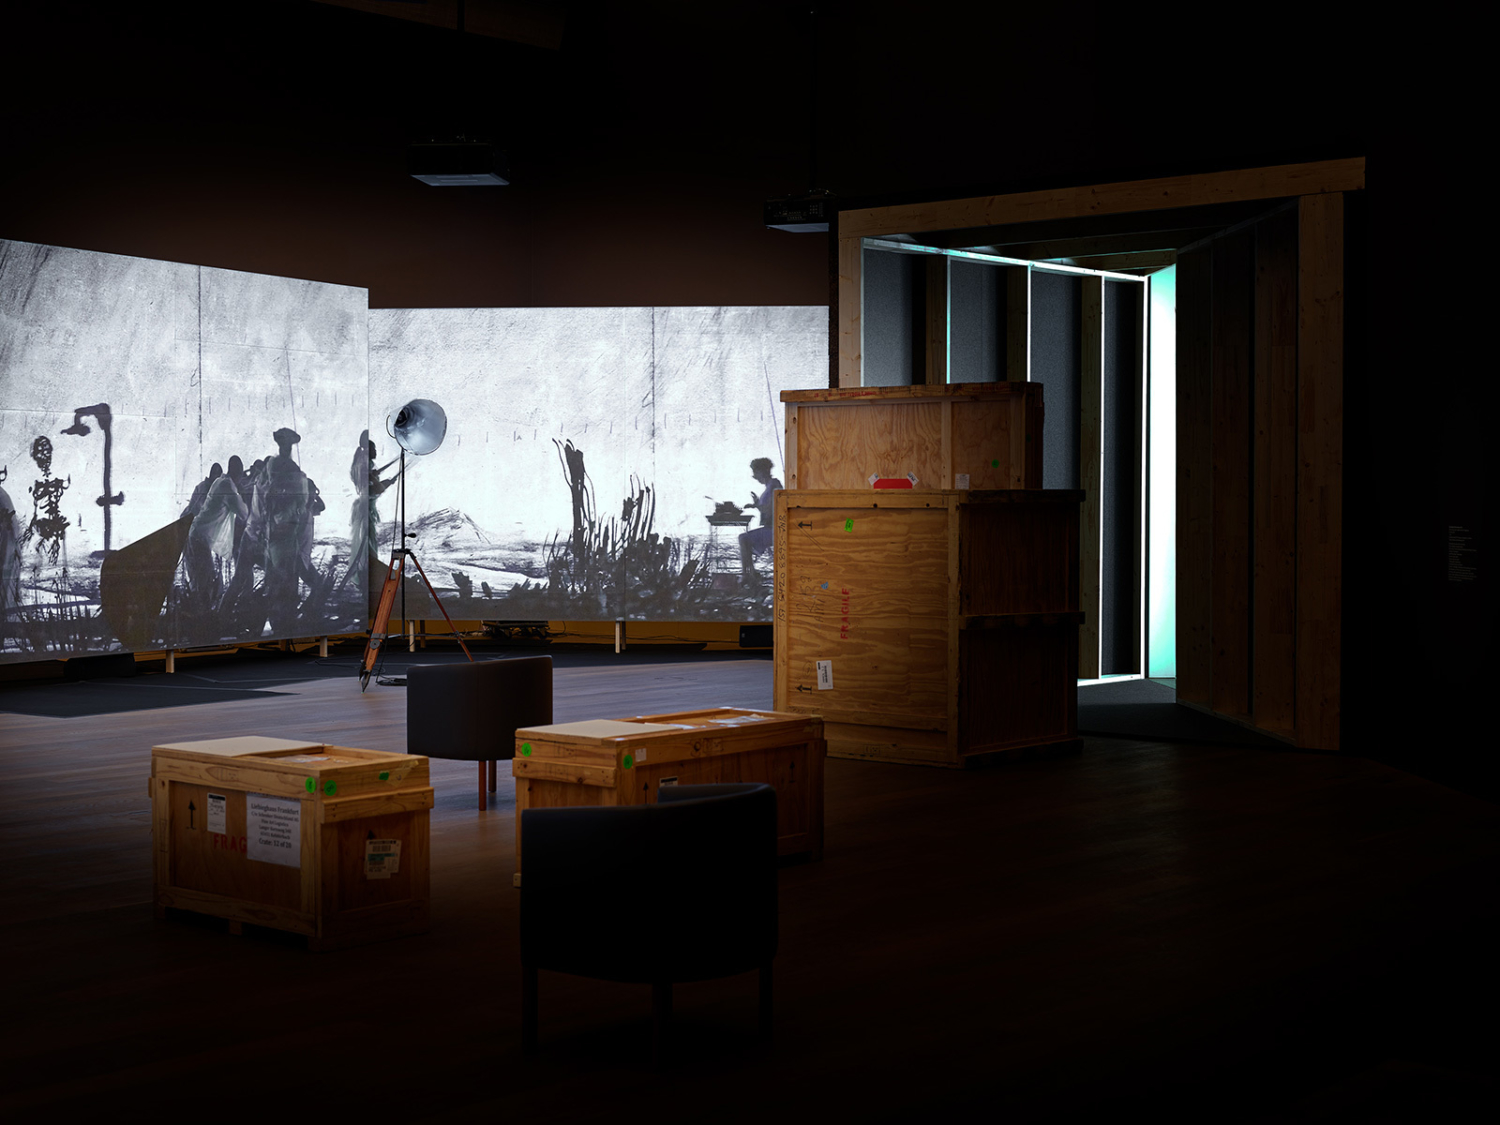 """Vue de l'exposition """"William Kentridge. More Sweetly Play the Dance"""", 13.02 – 30.08.2021, Mudam Luxembourg"""